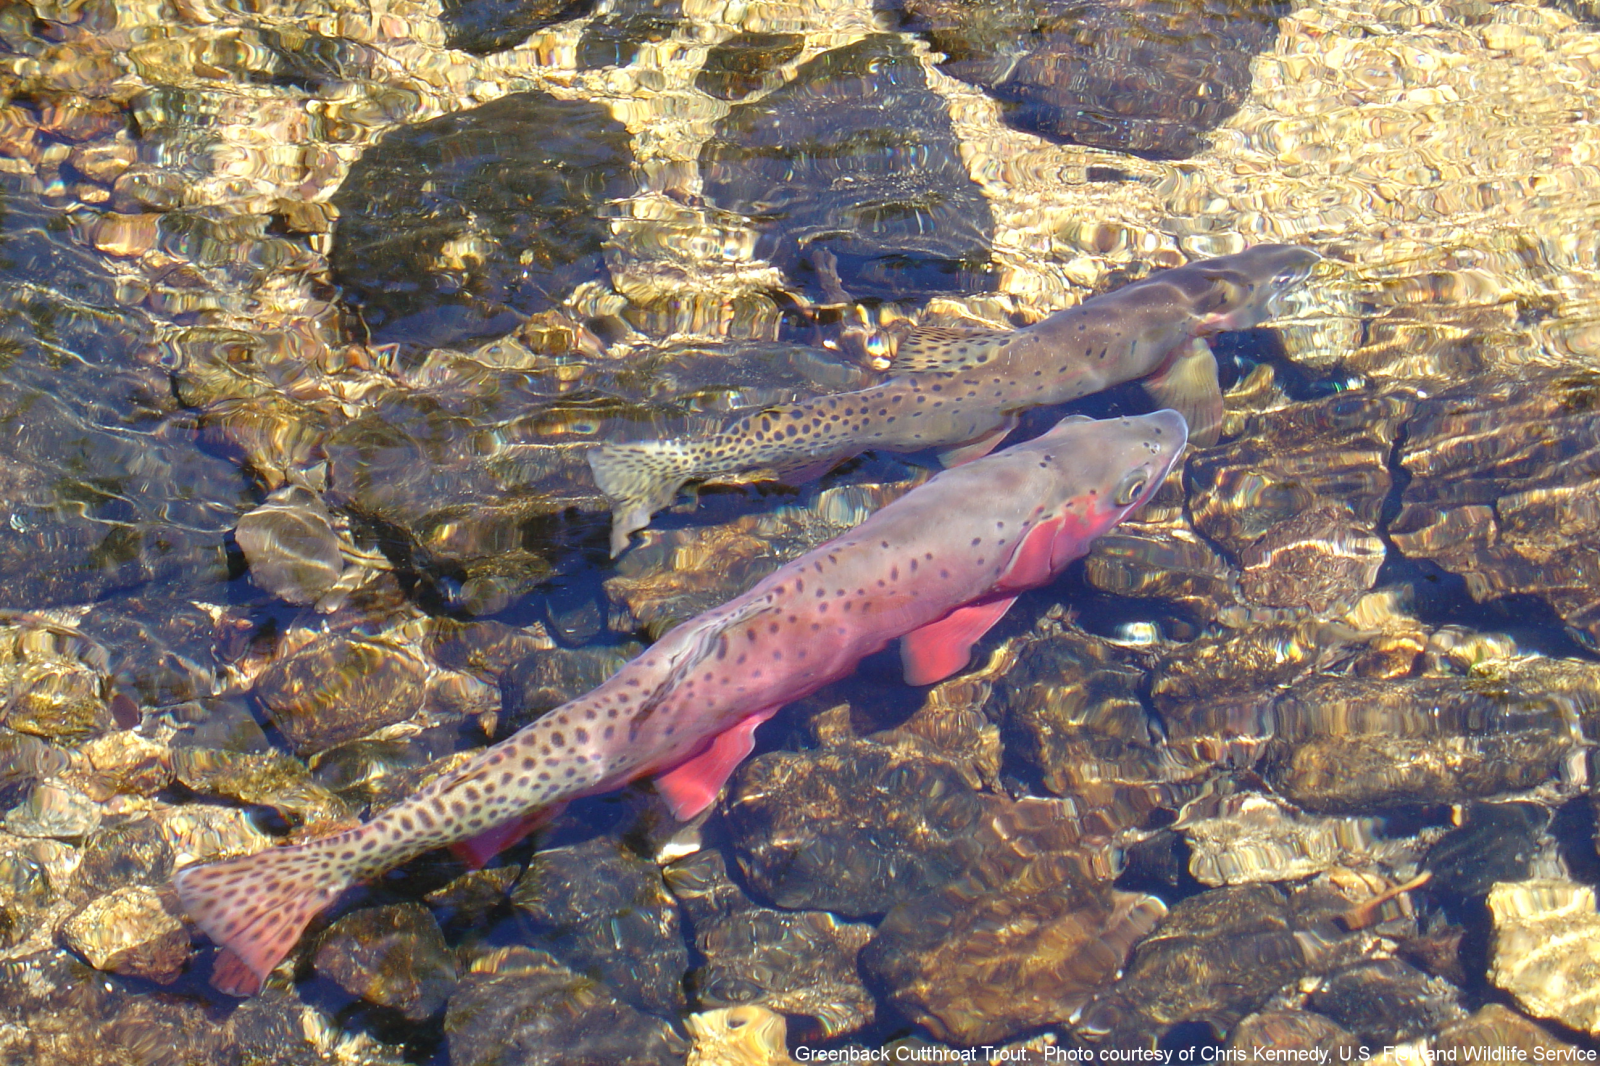 Greenback Cutthroat Trout. Courtesy of Chris Kennedy, U.S. Fish and Wildlife Service